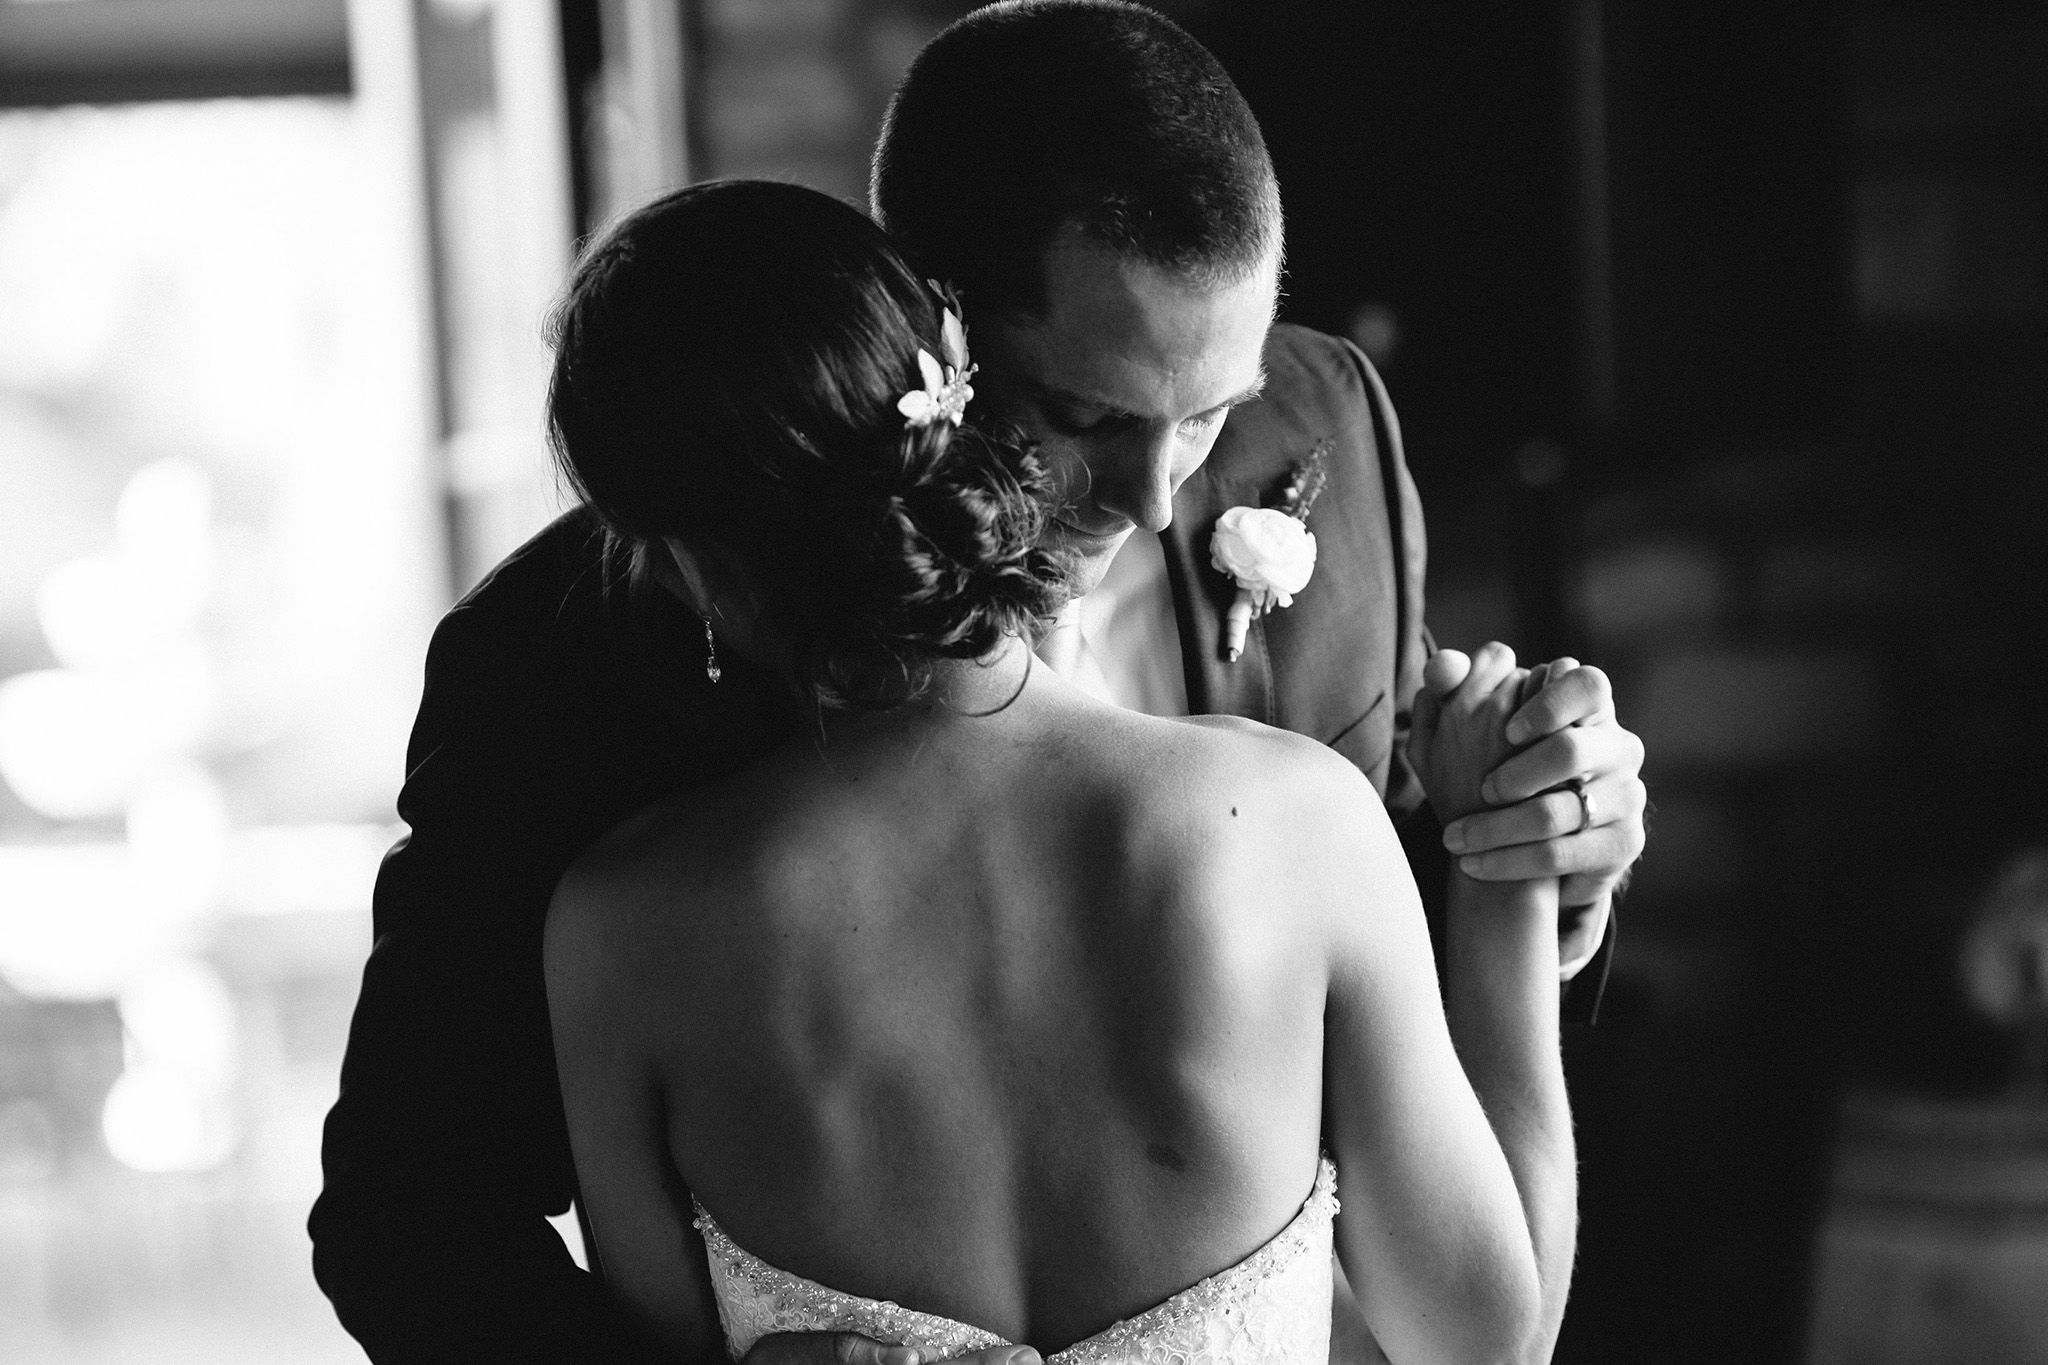 Bride and groom's first dance at Pear Valley wedding in Paso Robles, CA